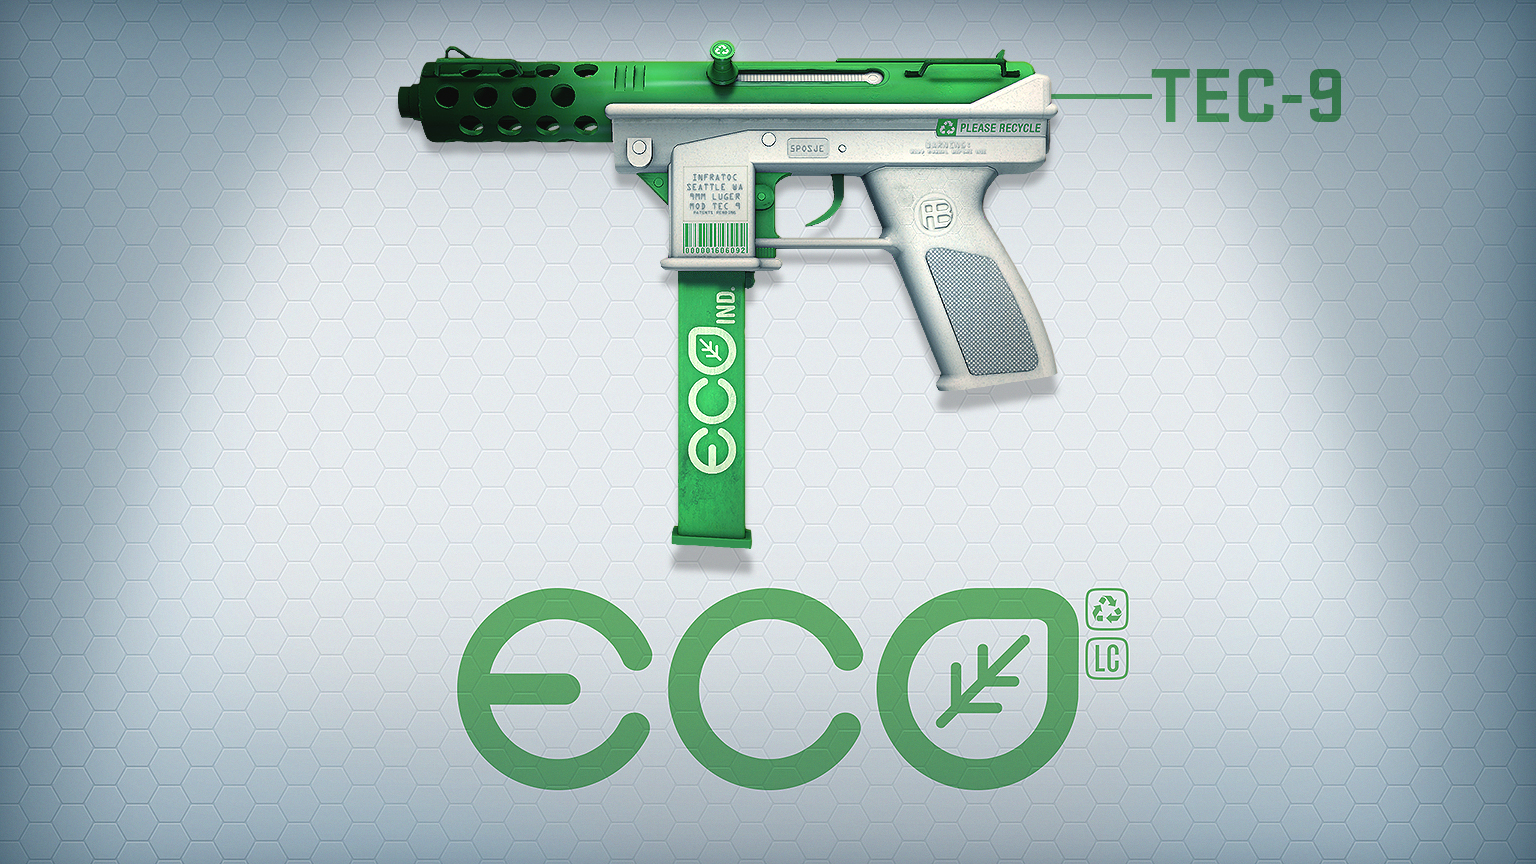 Workshop Tec-9 eco line